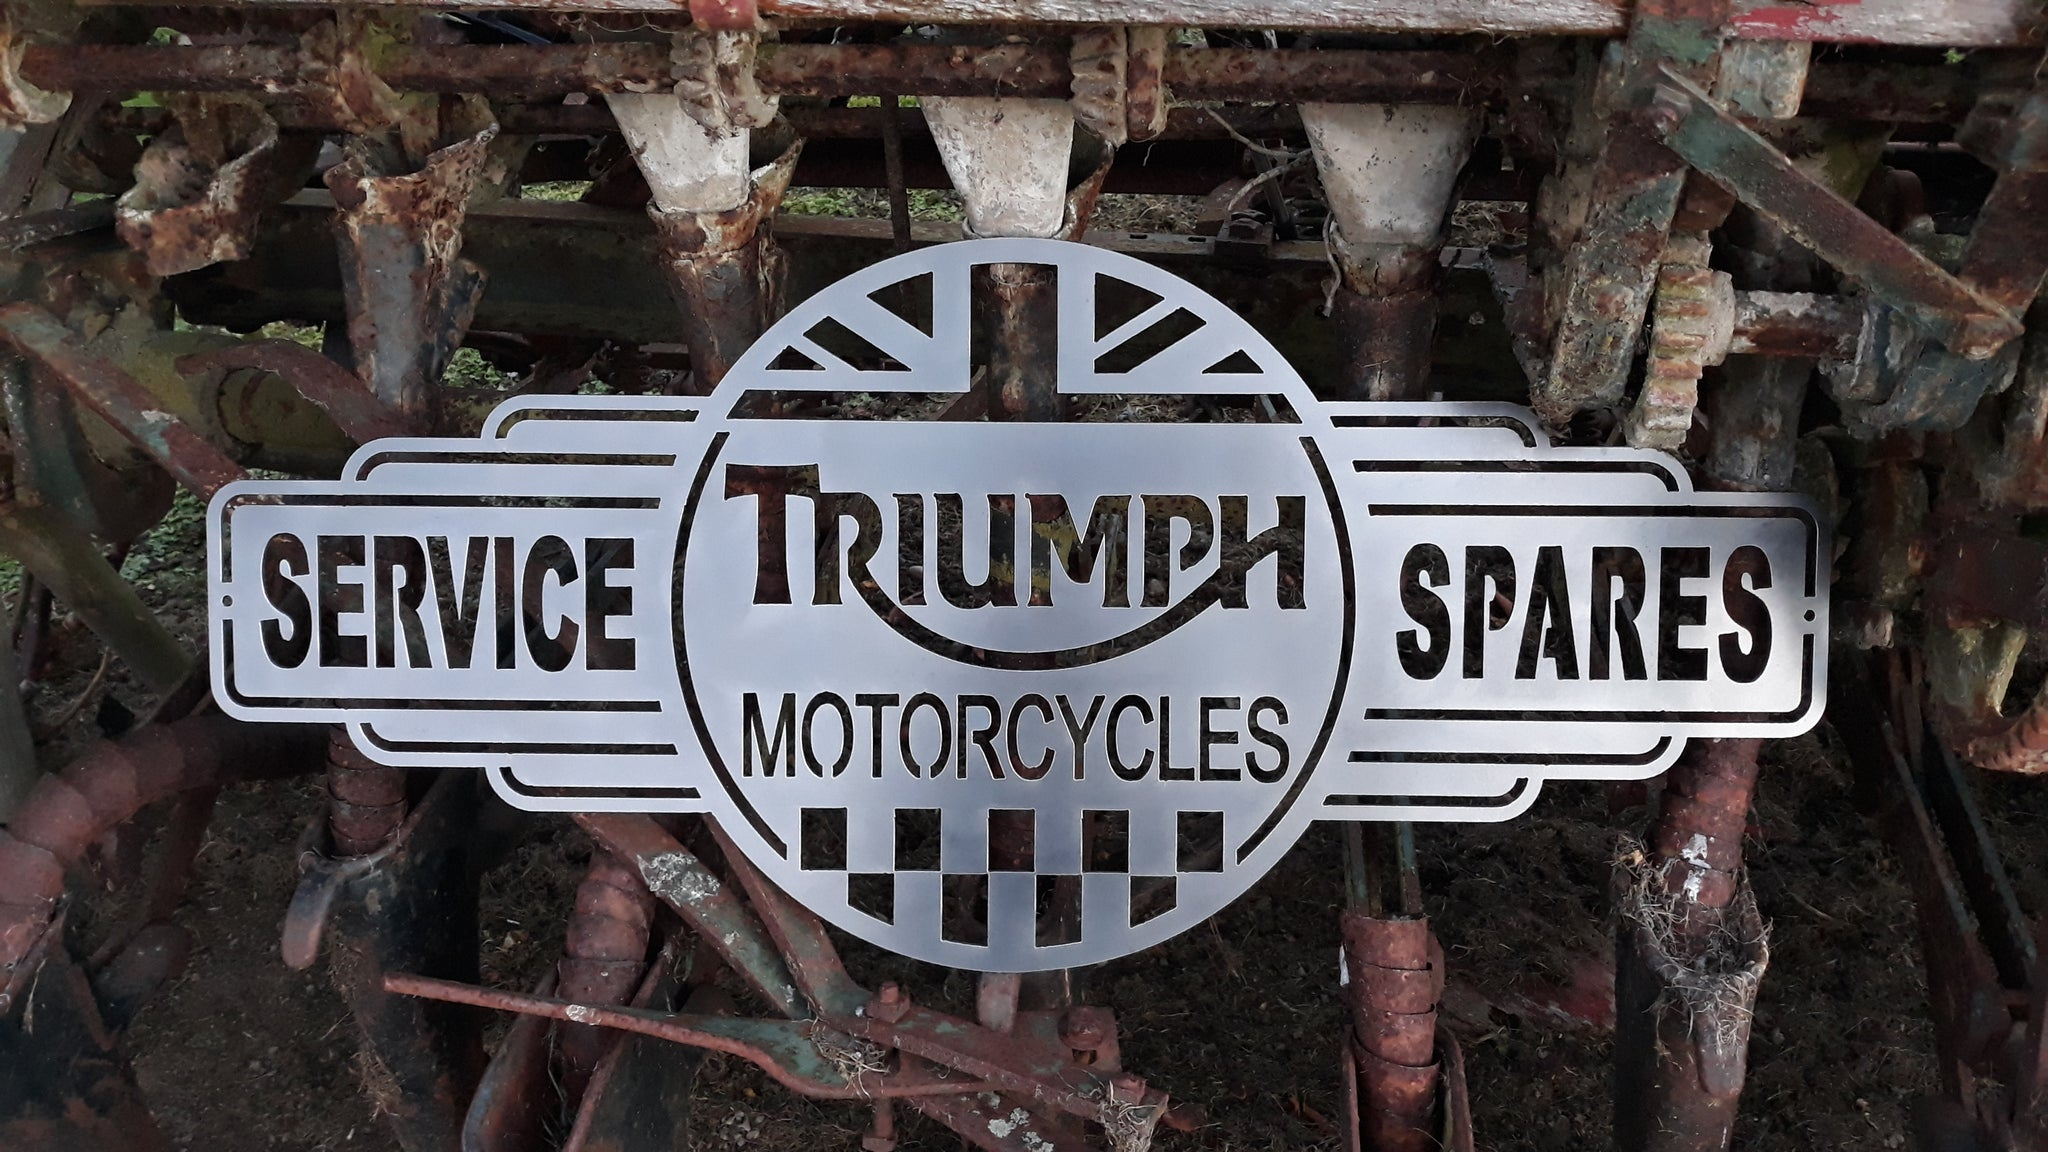 Triumph Service & Spares #1 – White Fire - Metal Craft, Signwriting